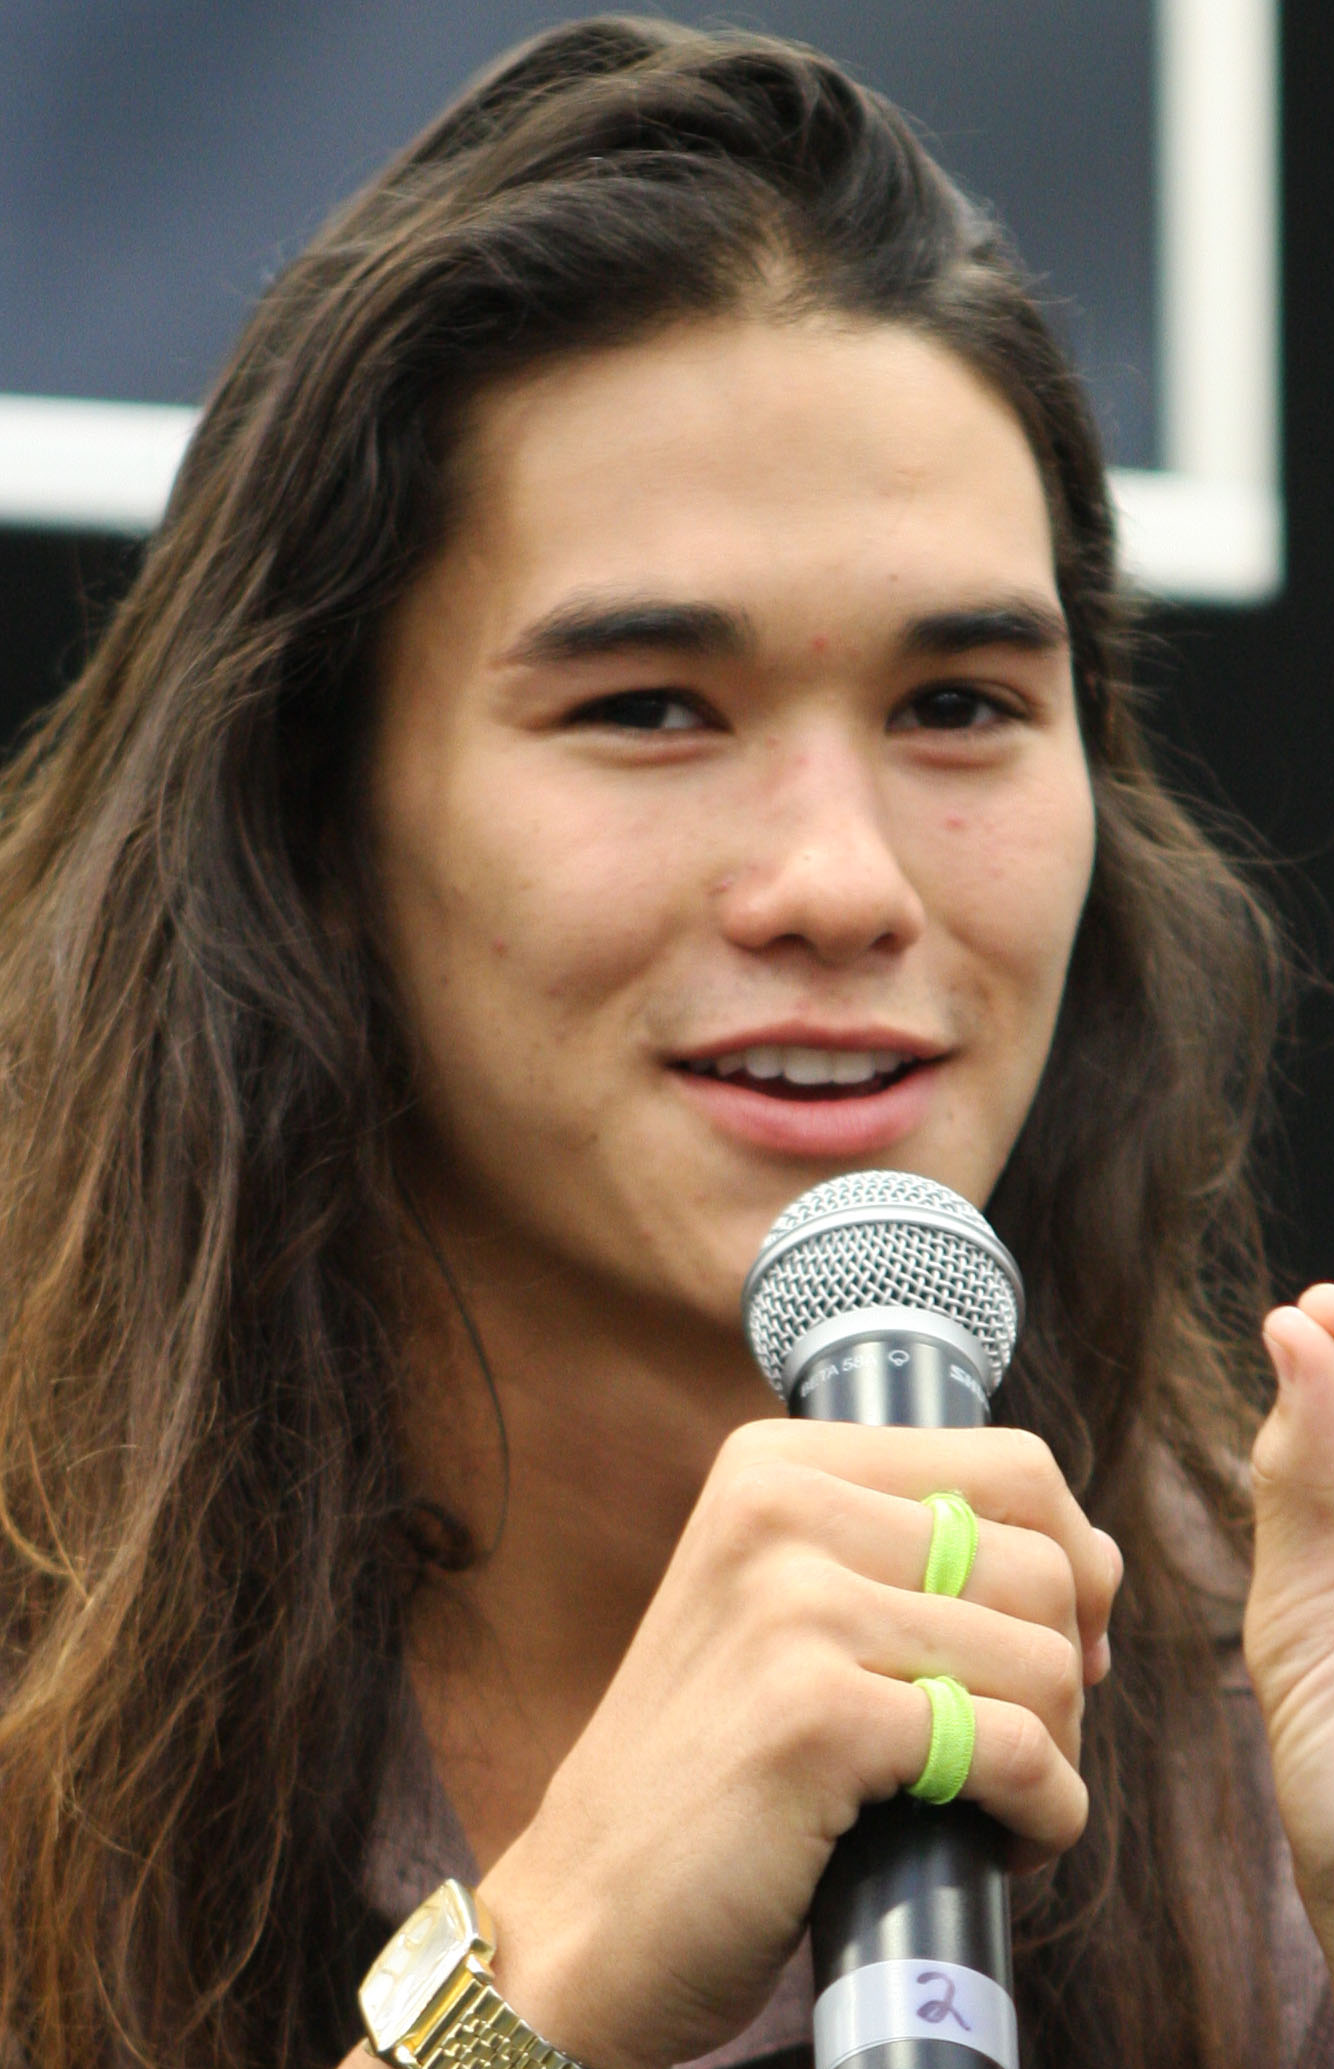 booboo stewart birthplace beverly hills california usa date of birth ...